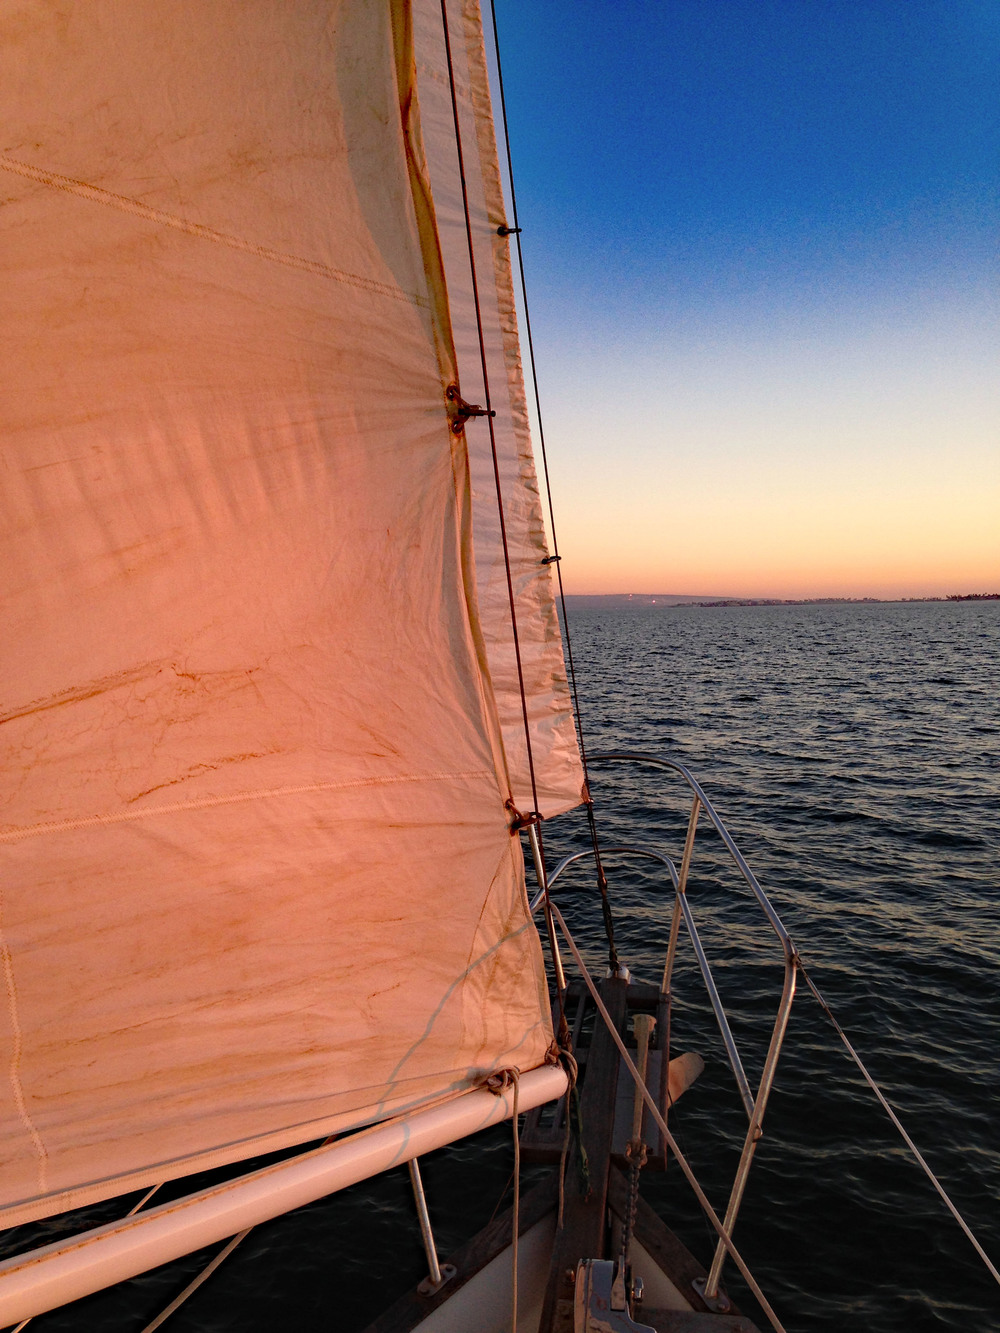 Sailing in San Diego Bay Sunset